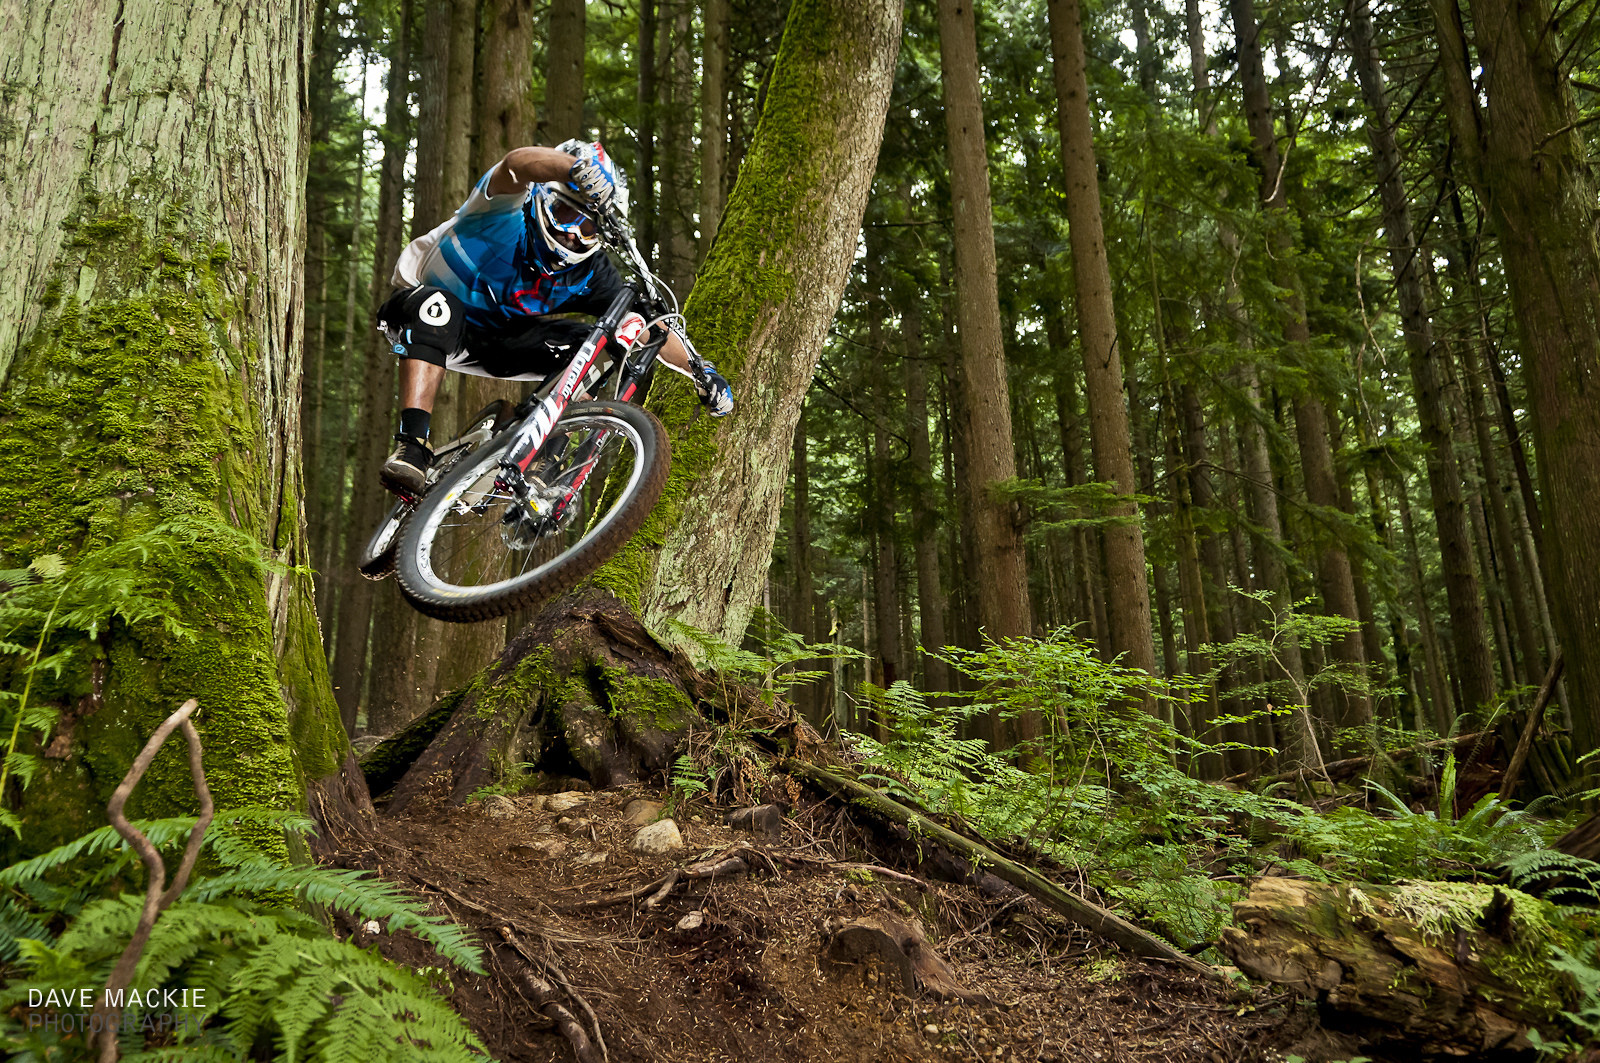 Green is good - dave-m - Mountain Biking Pictures - Vital MTB